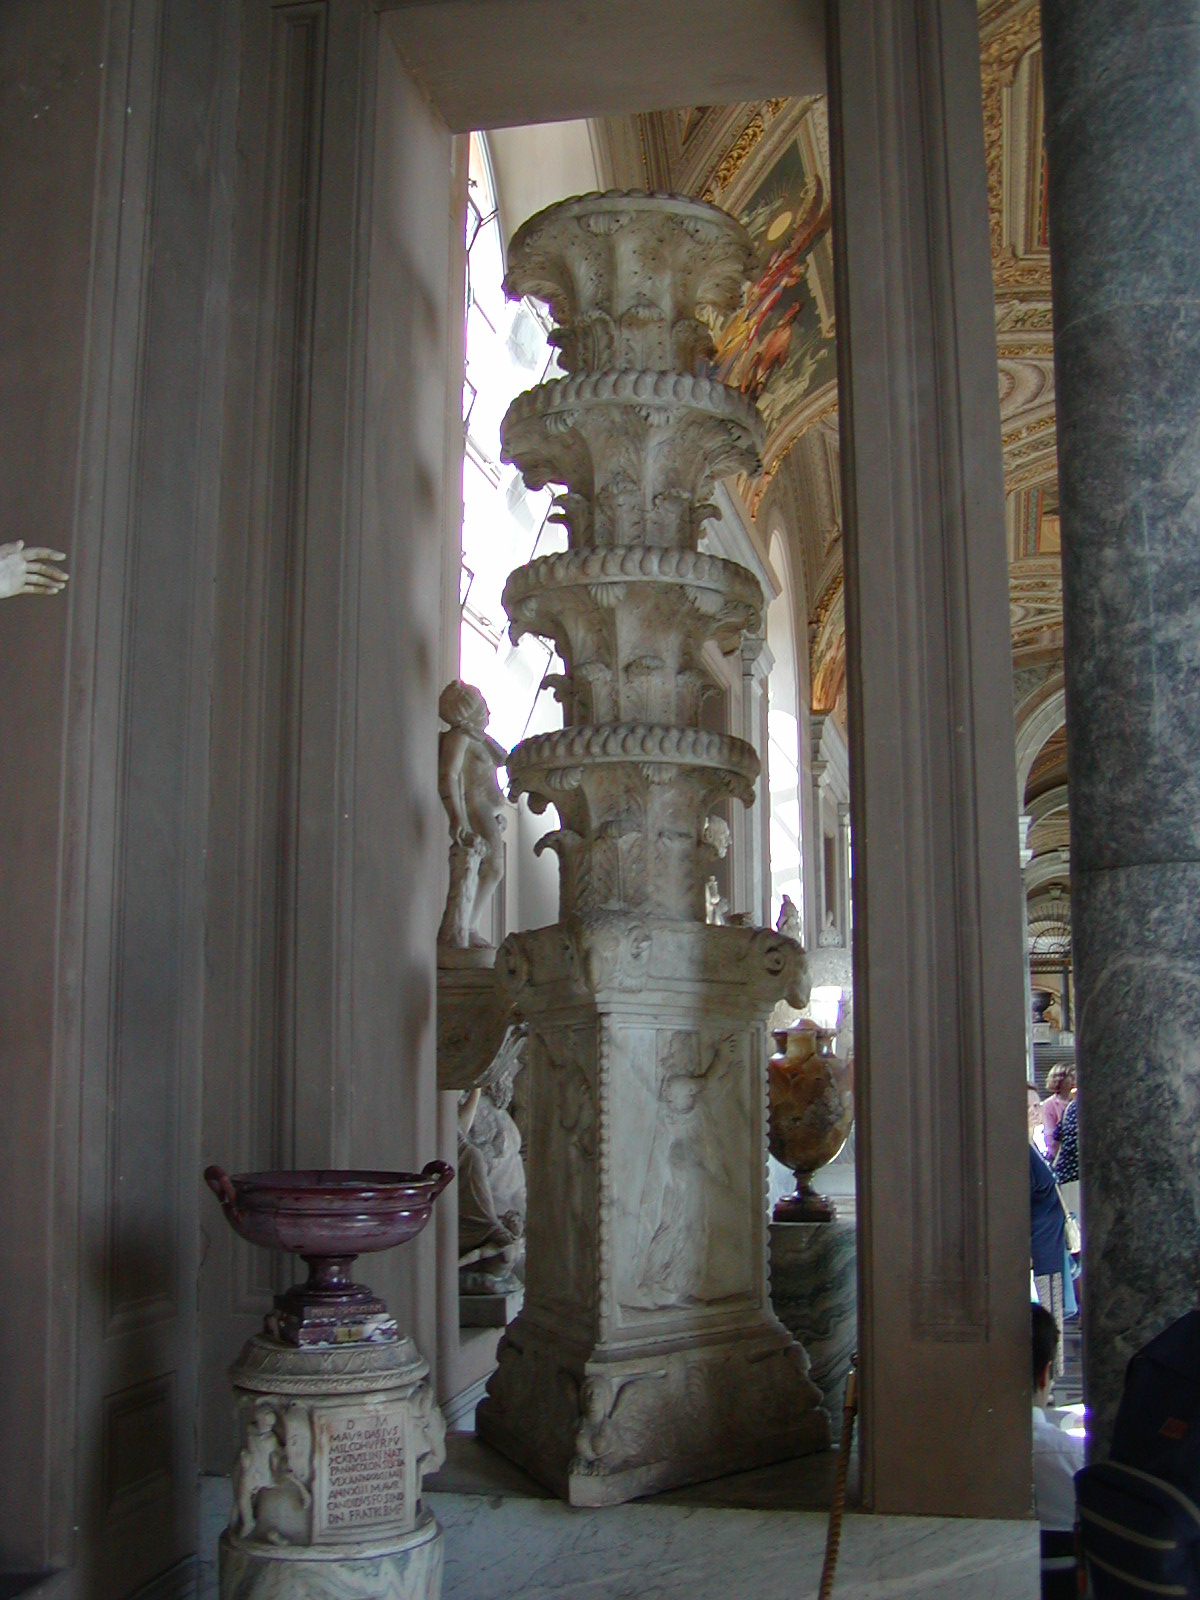 Gallery of the Candelabra - 2002-09-10-150533